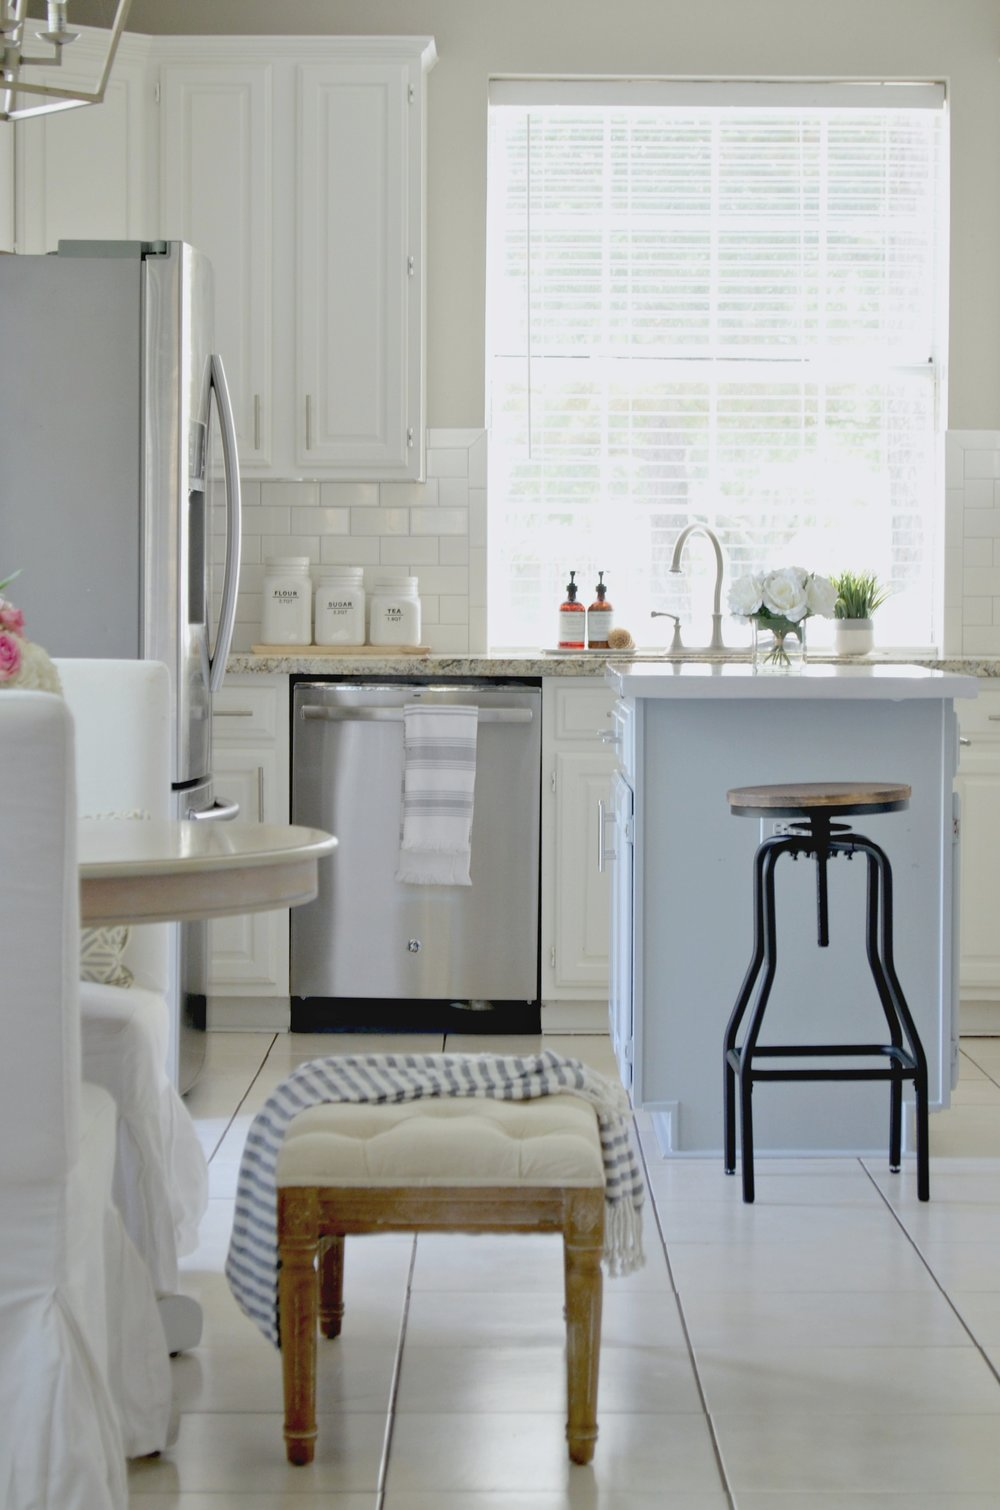 Kitchen Makeover Reveal Phase 1 Julie Warnock Interiors